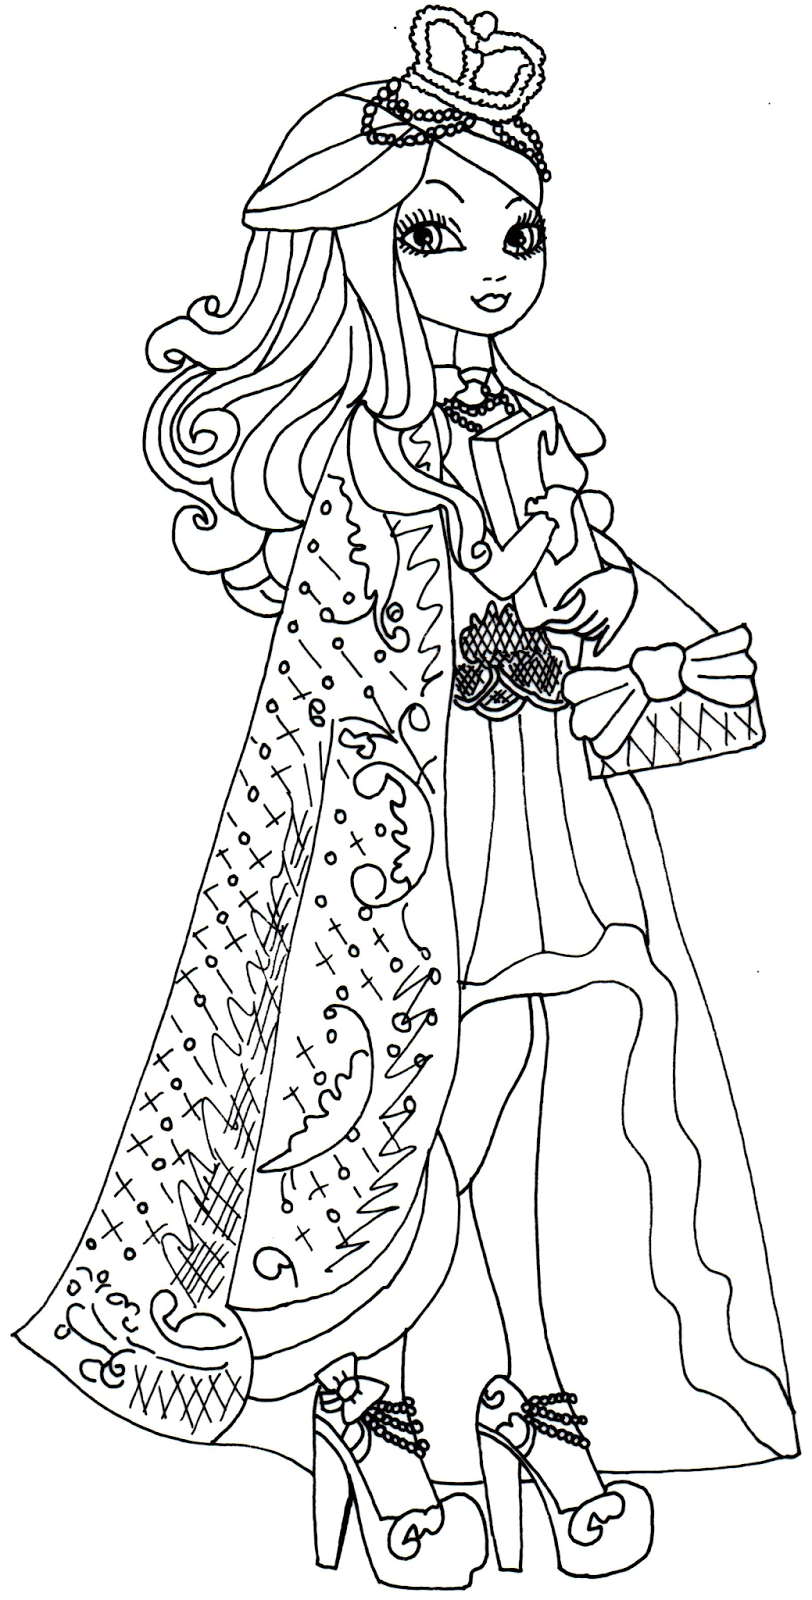 apple white ever after high para colorear